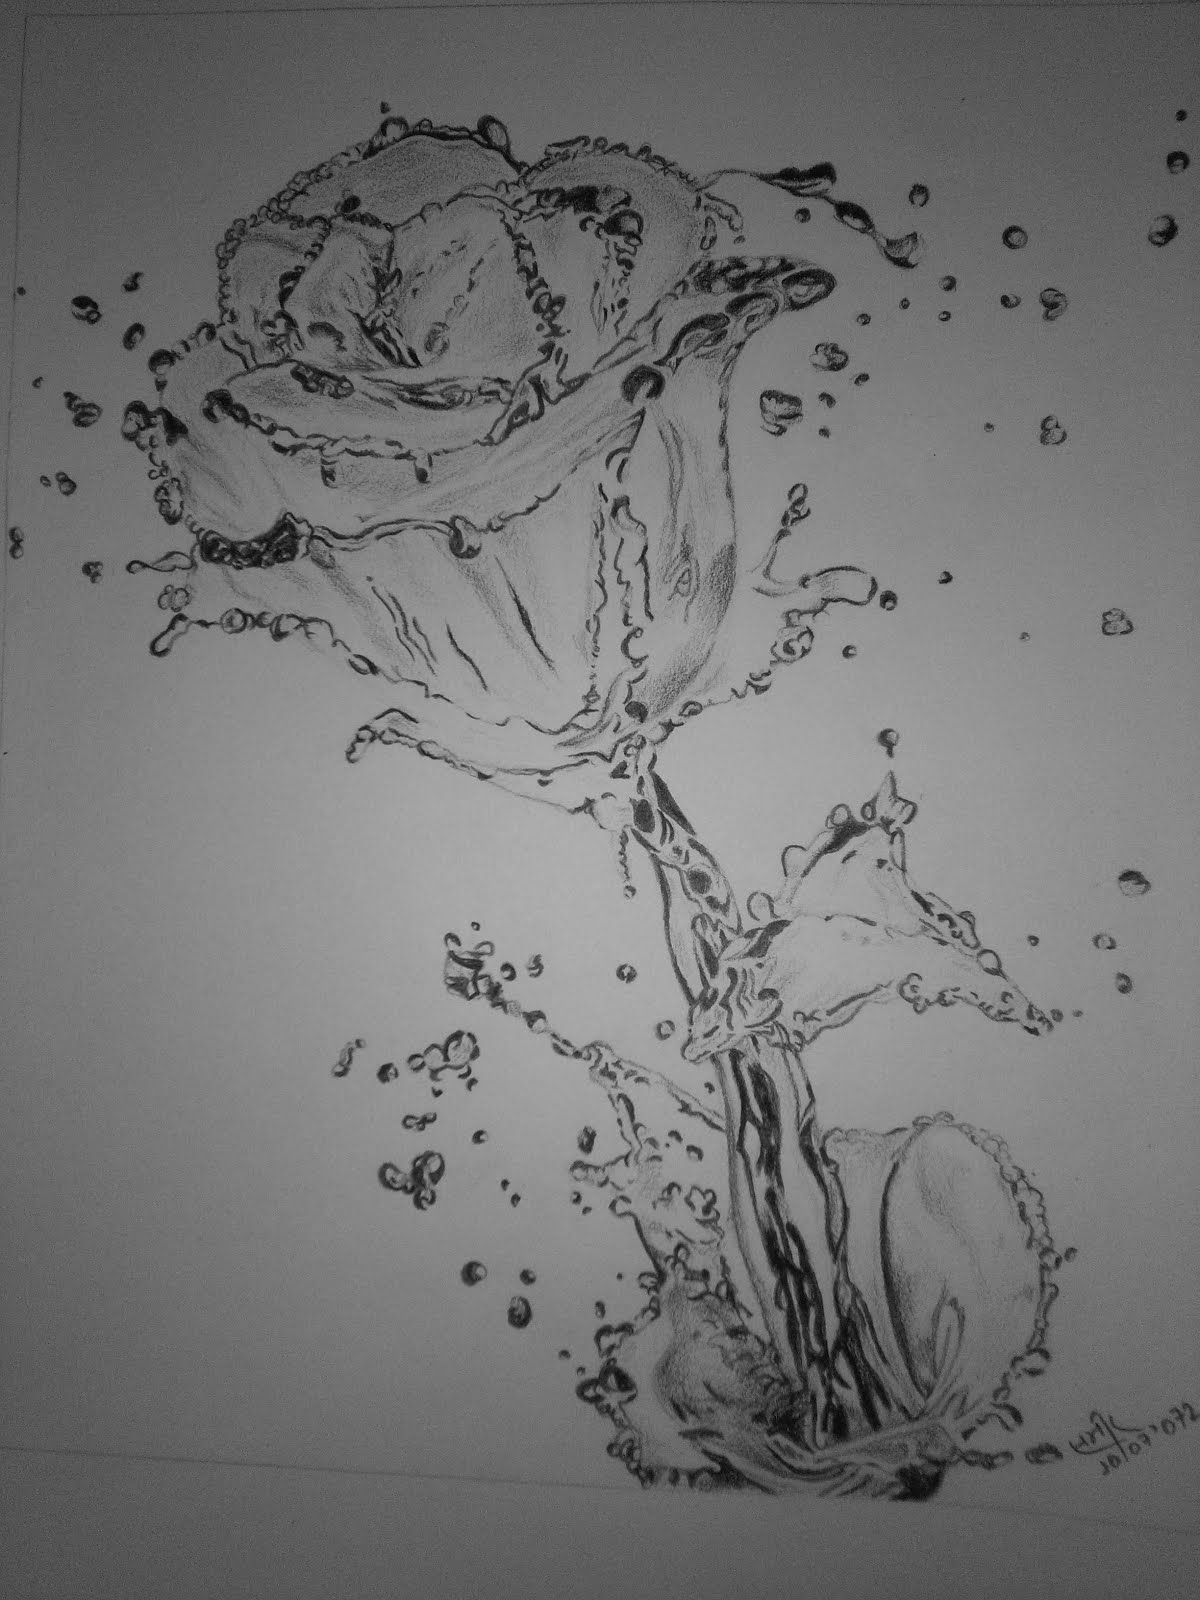 This is a sketch of a rose in watery form it seems in the sketch